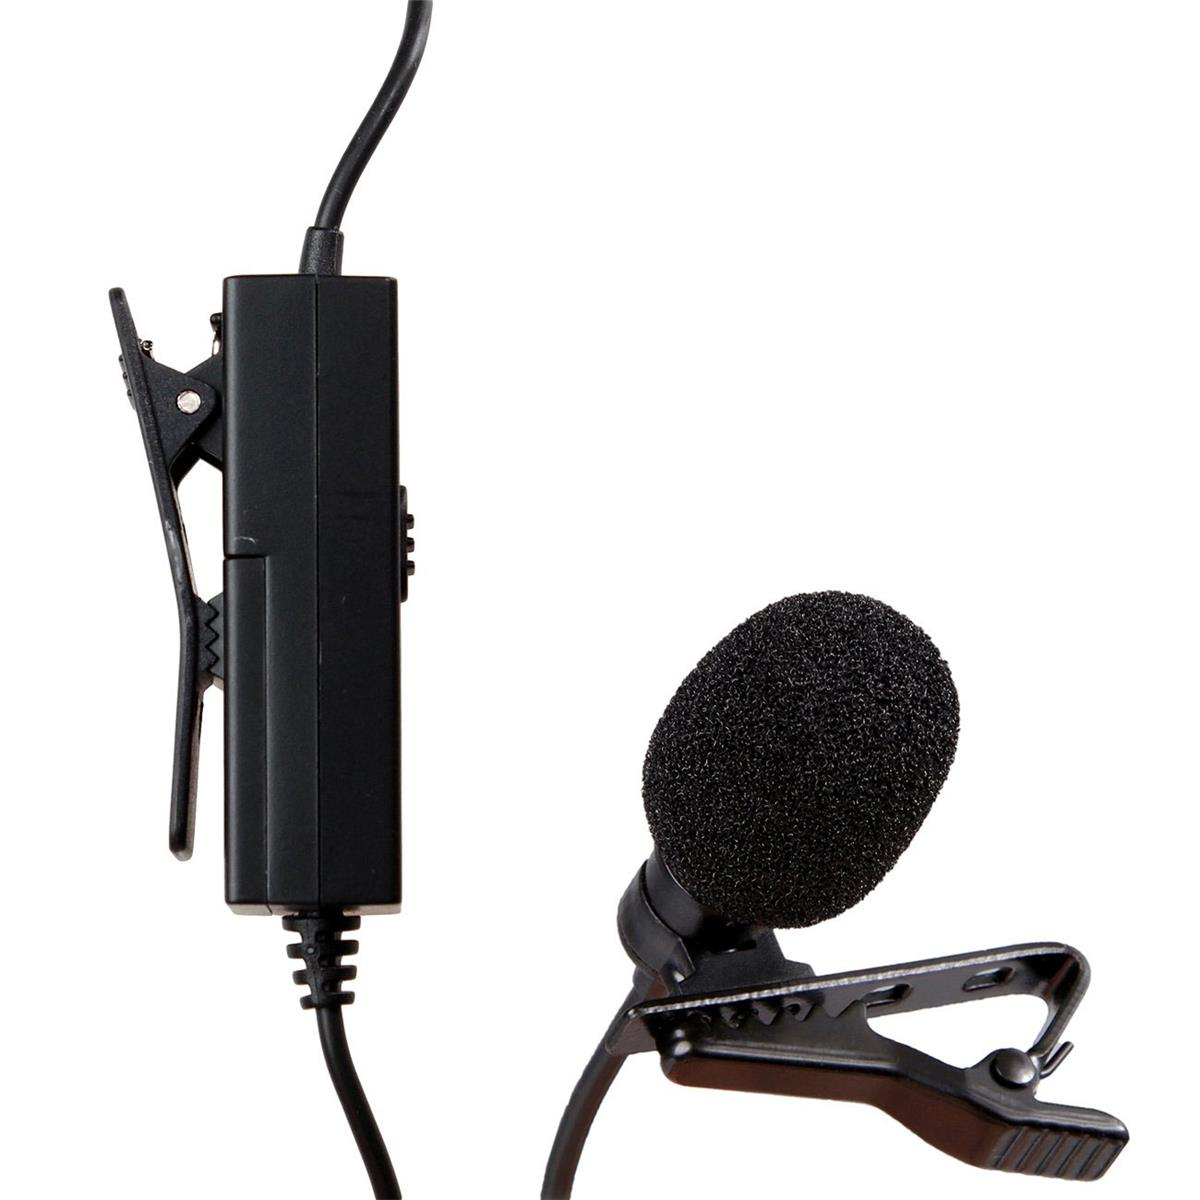 BOYA BY-GM10 Pro Audio Lavalier Microphone for GoPro HERO 4, 3+, and 3 Camera